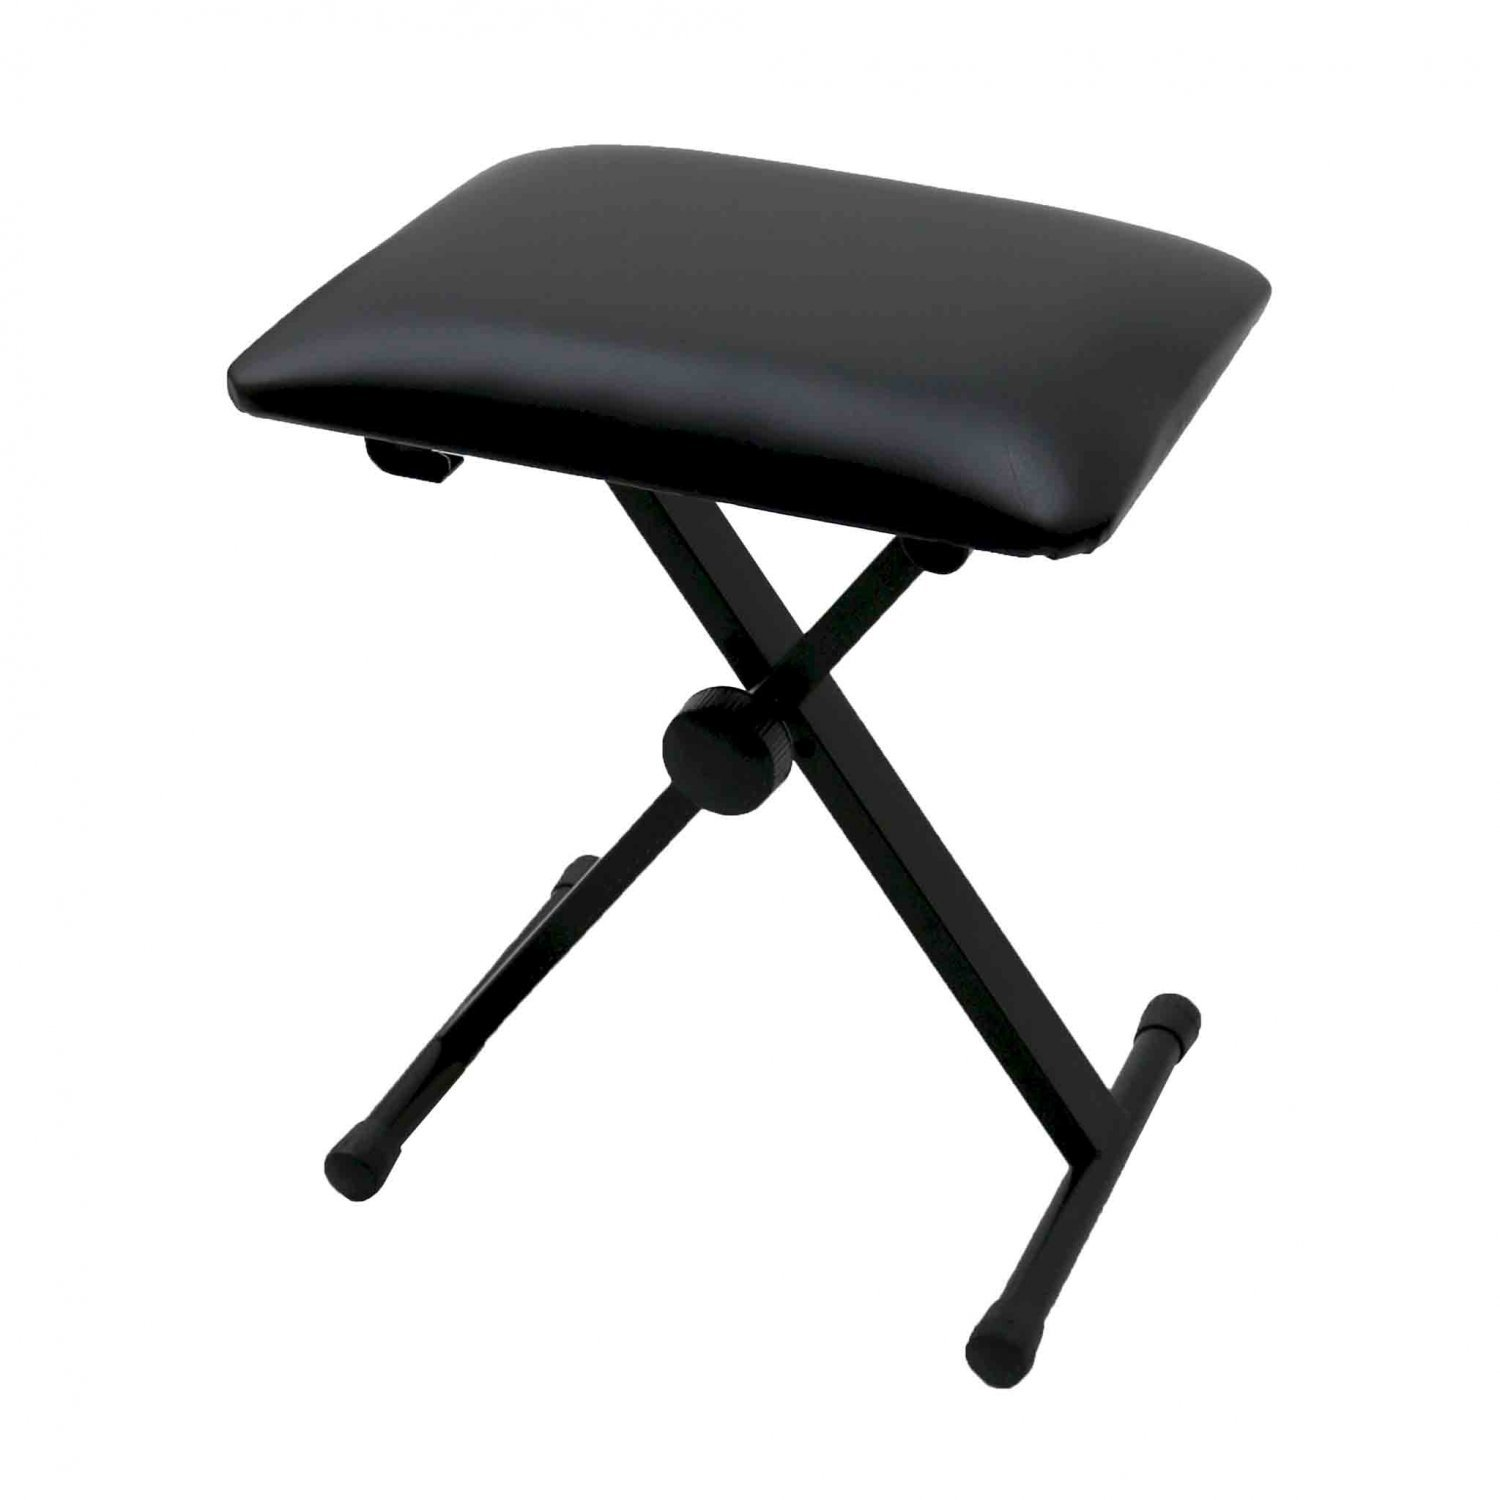 Fine Keyboard Piano Bench Stool Seat Chair Throne Adjustable Portable Inzonedesignstudio Interior Chair Design Inzonedesignstudiocom